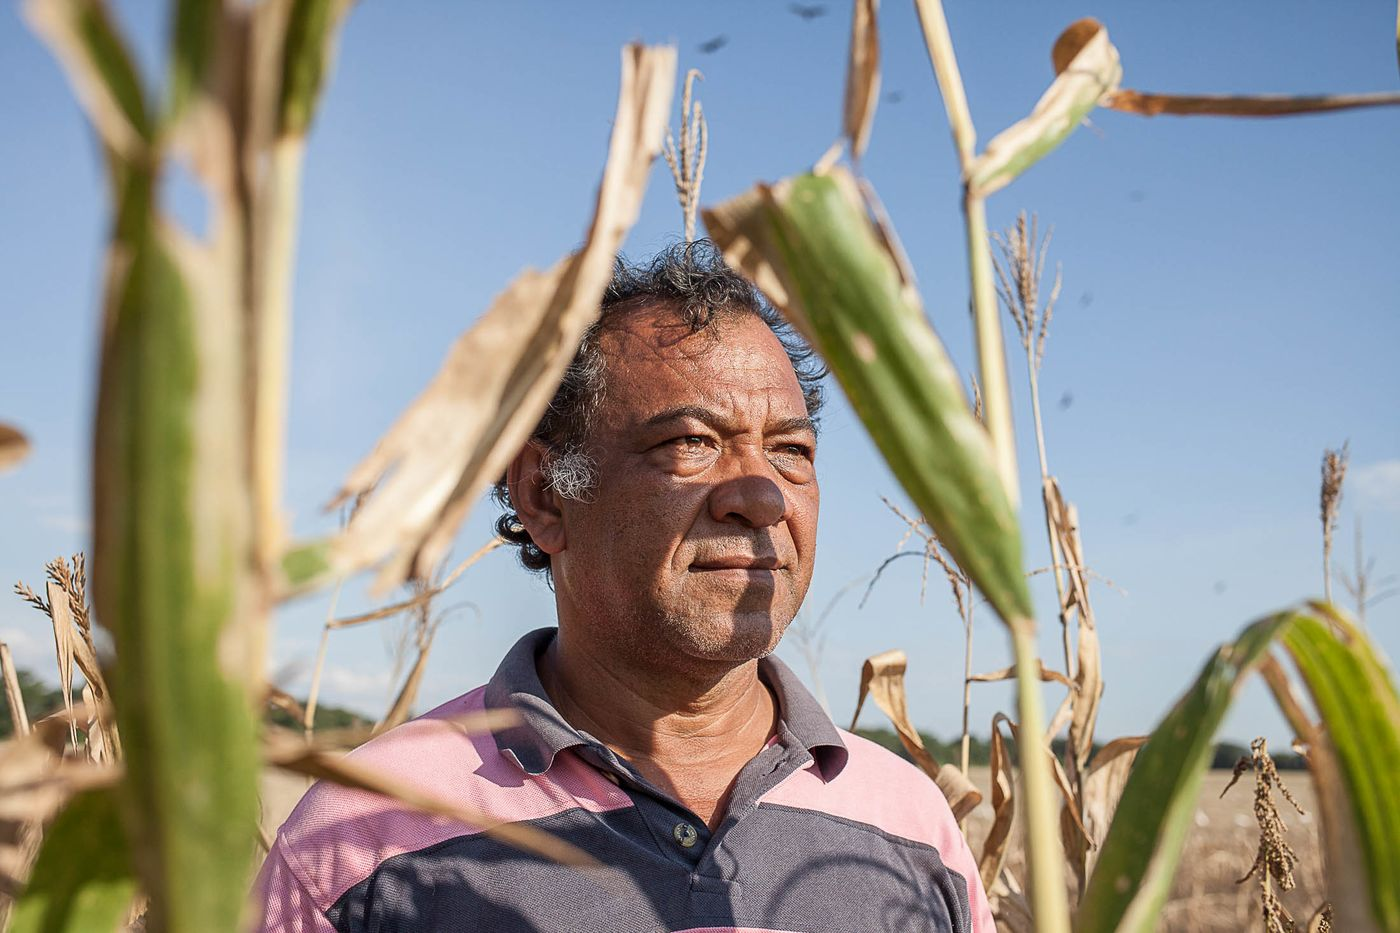 """""""There's no seeds or fertilizer. On top of that, there's regular shortages of food and power cuts,"""" said farmer Johnny Villaroel, 49. """"I work at a loss, but, sadly, that's all we know how to do: plant."""""""